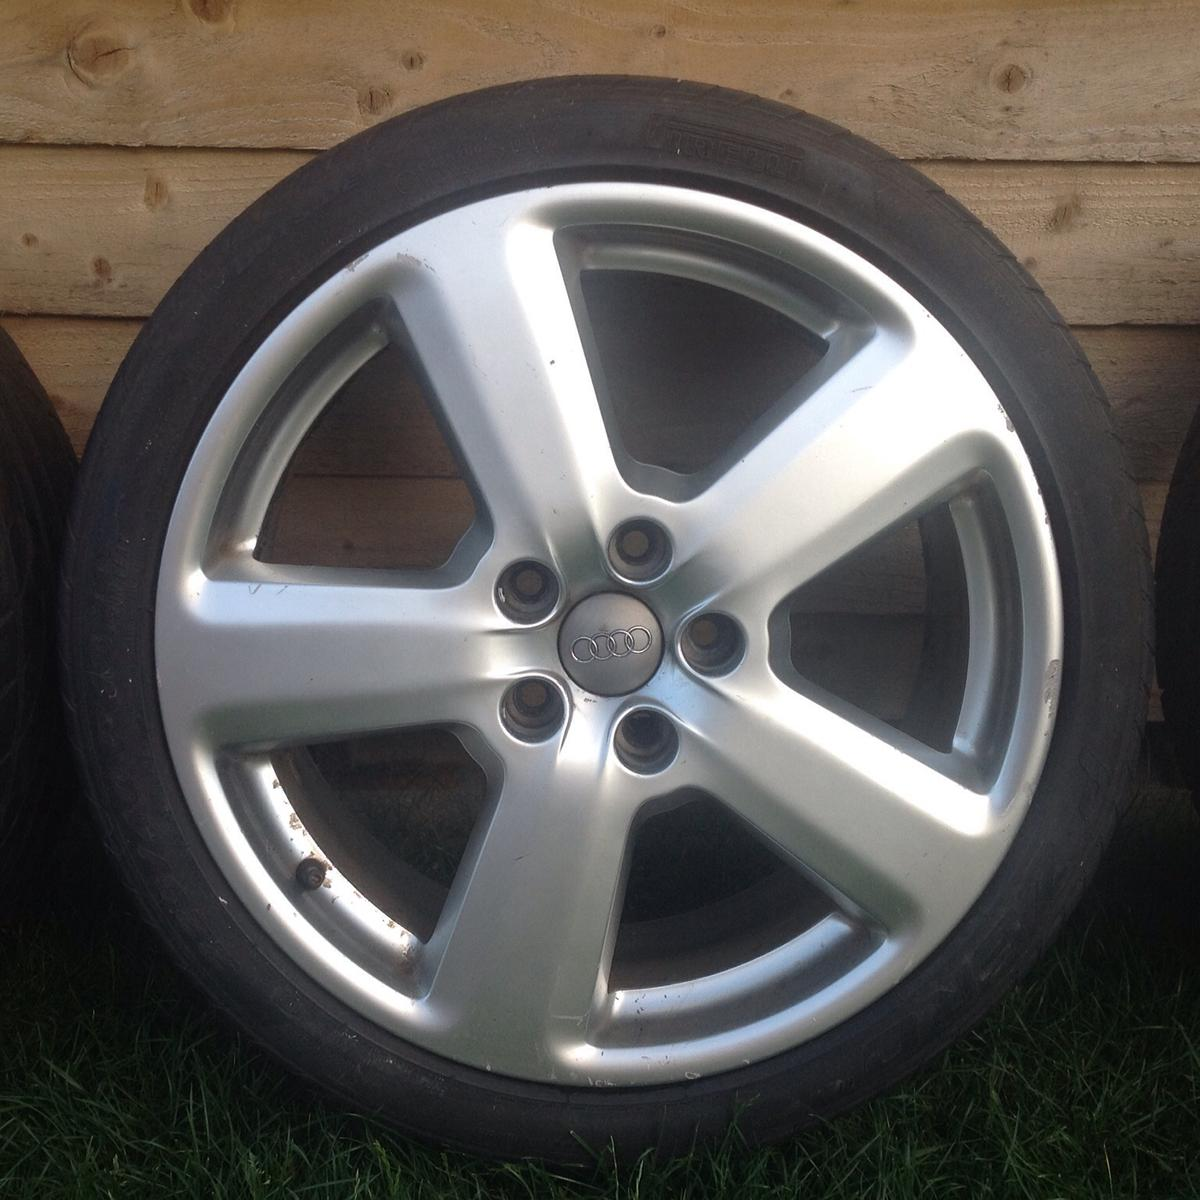 "Audi A4 For Sale Near Me: Genuine Audi A3 / A4 S-Line 18"" Alloy Wheels In Amber"